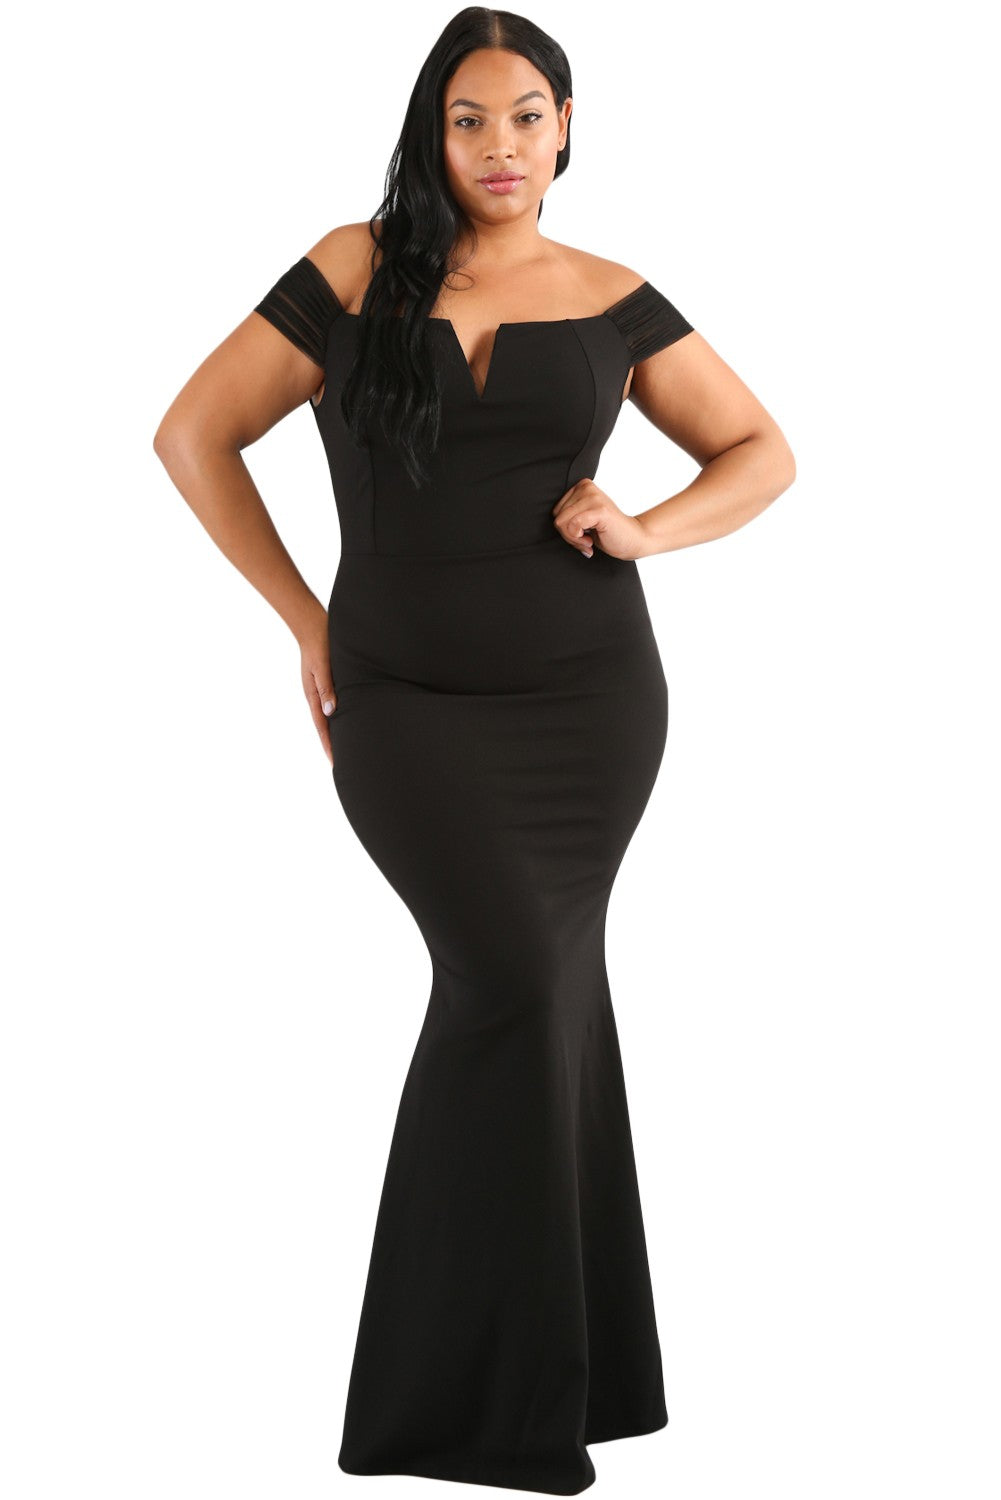 Janice -Black Off Shoulder Cocktail Evening Dress